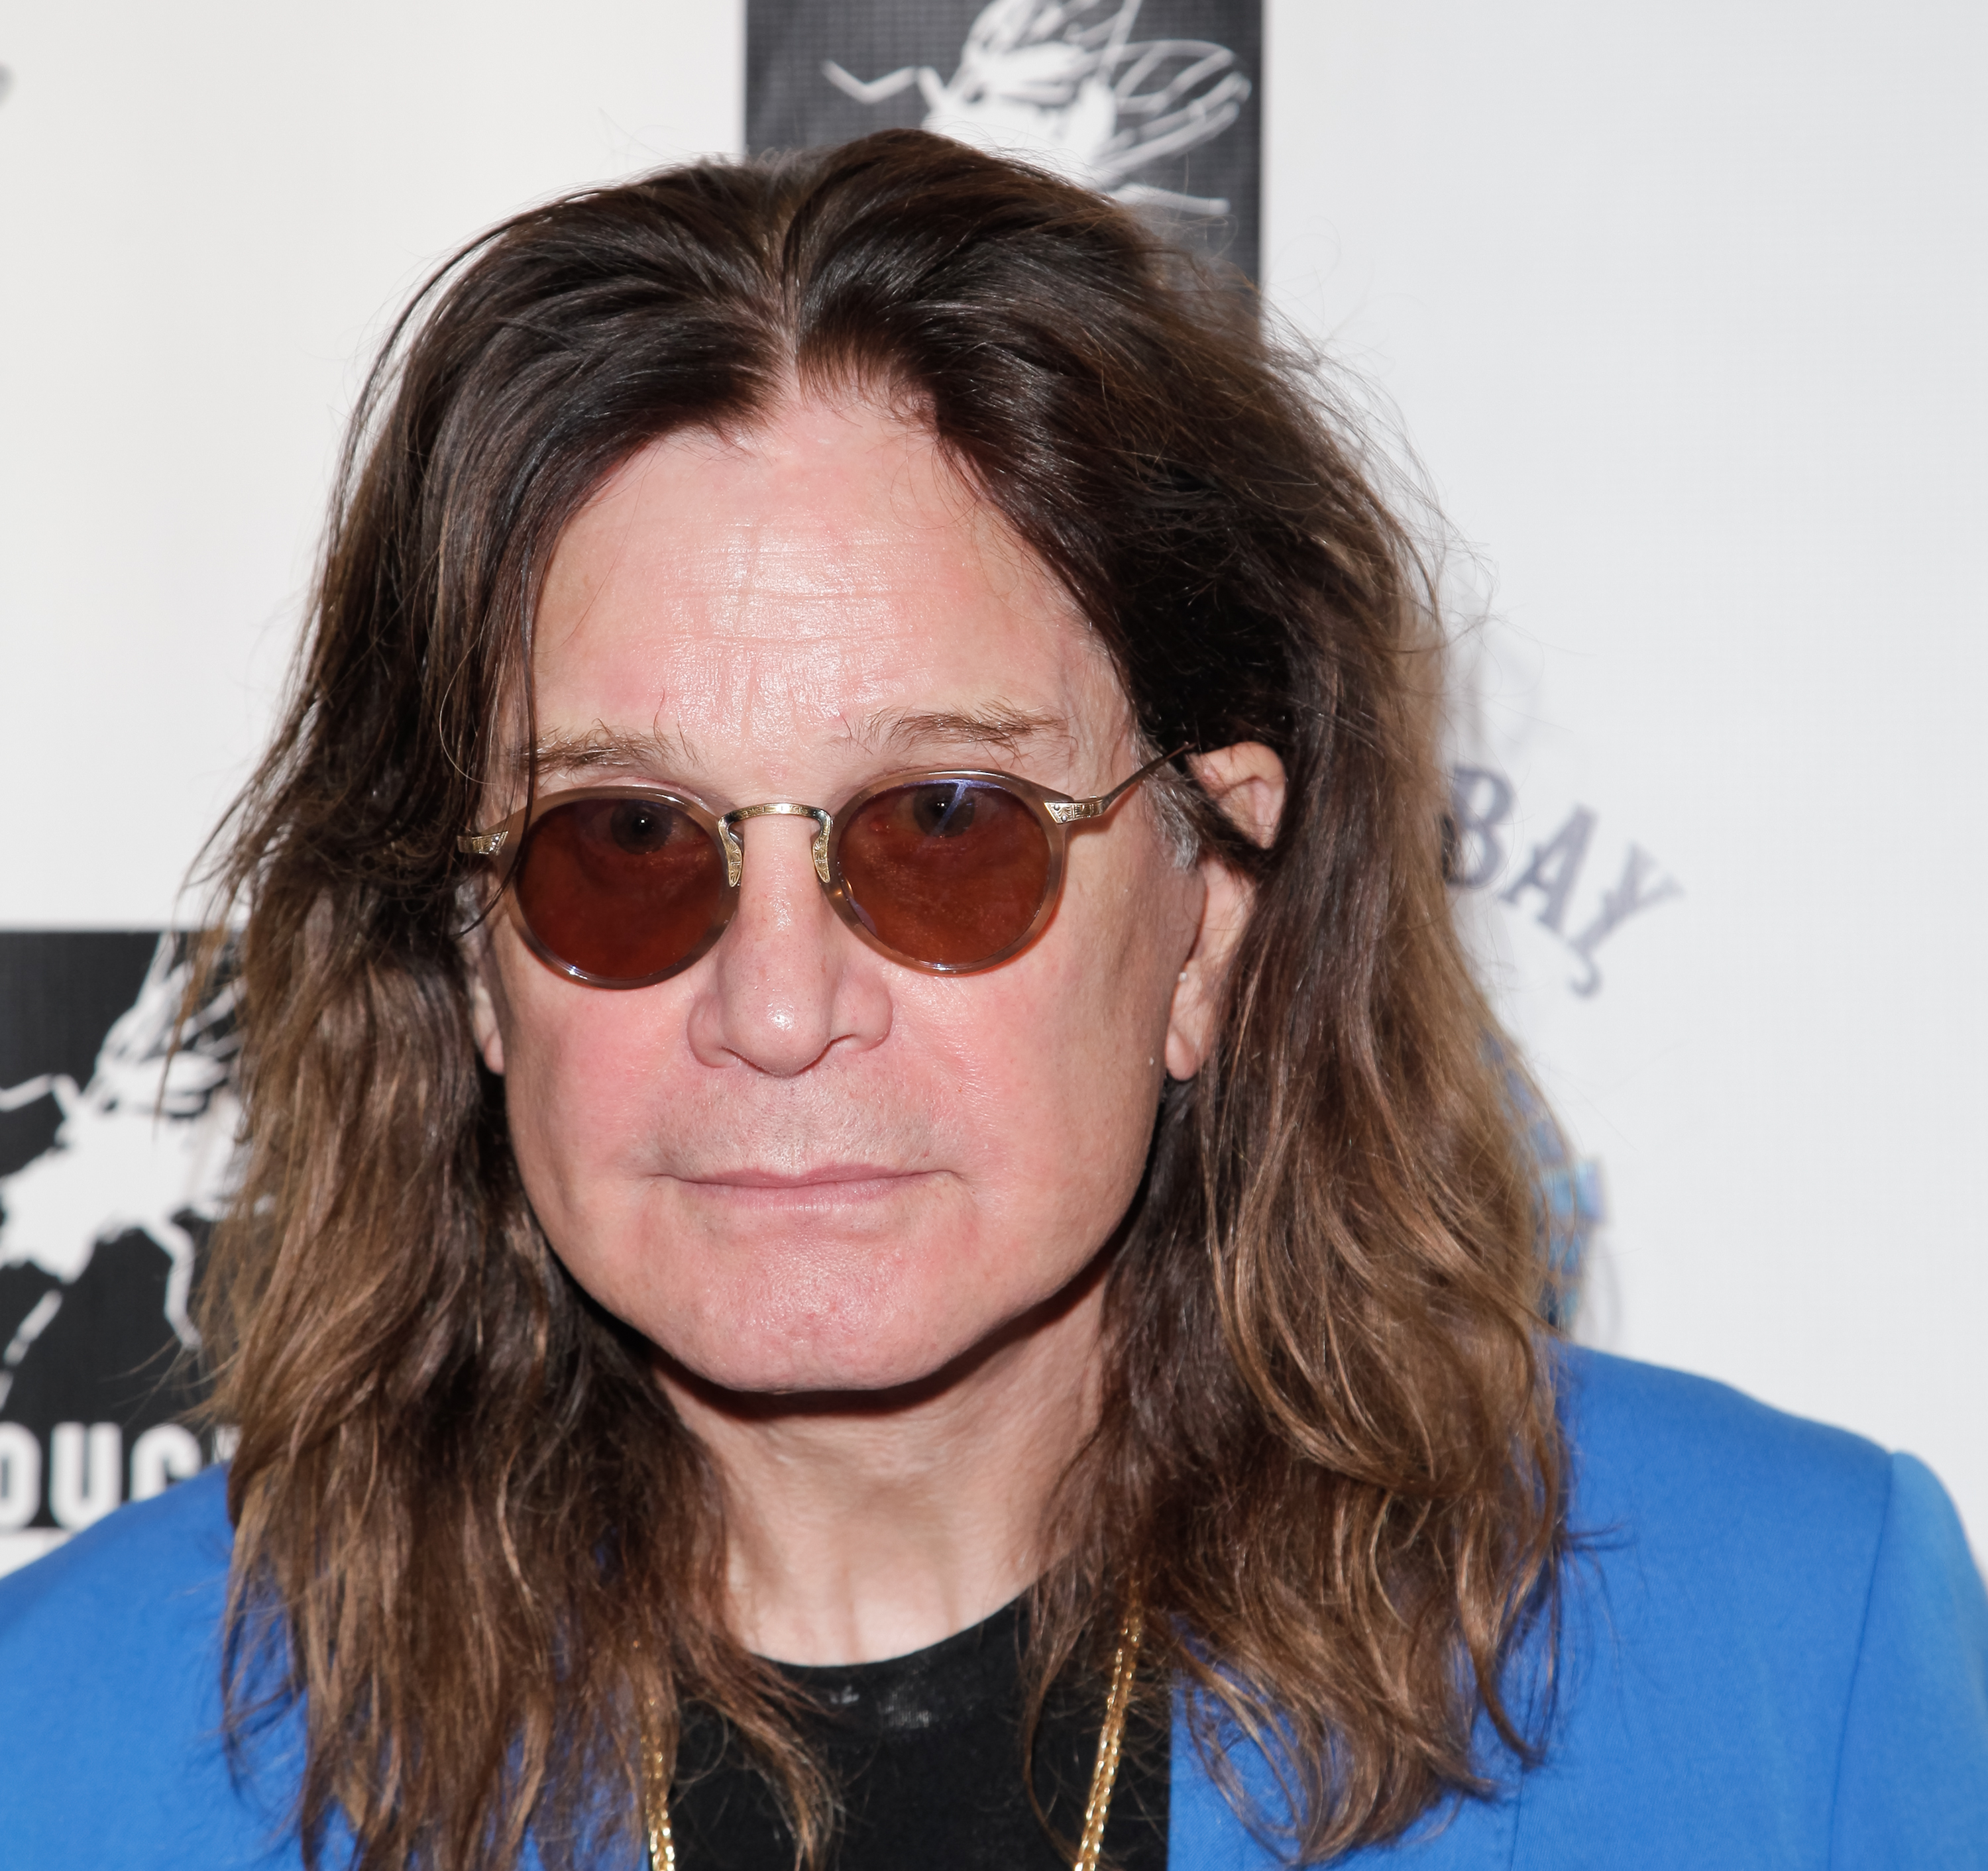 Ozzy Osbourne hospitalised with infection as he cancels concert